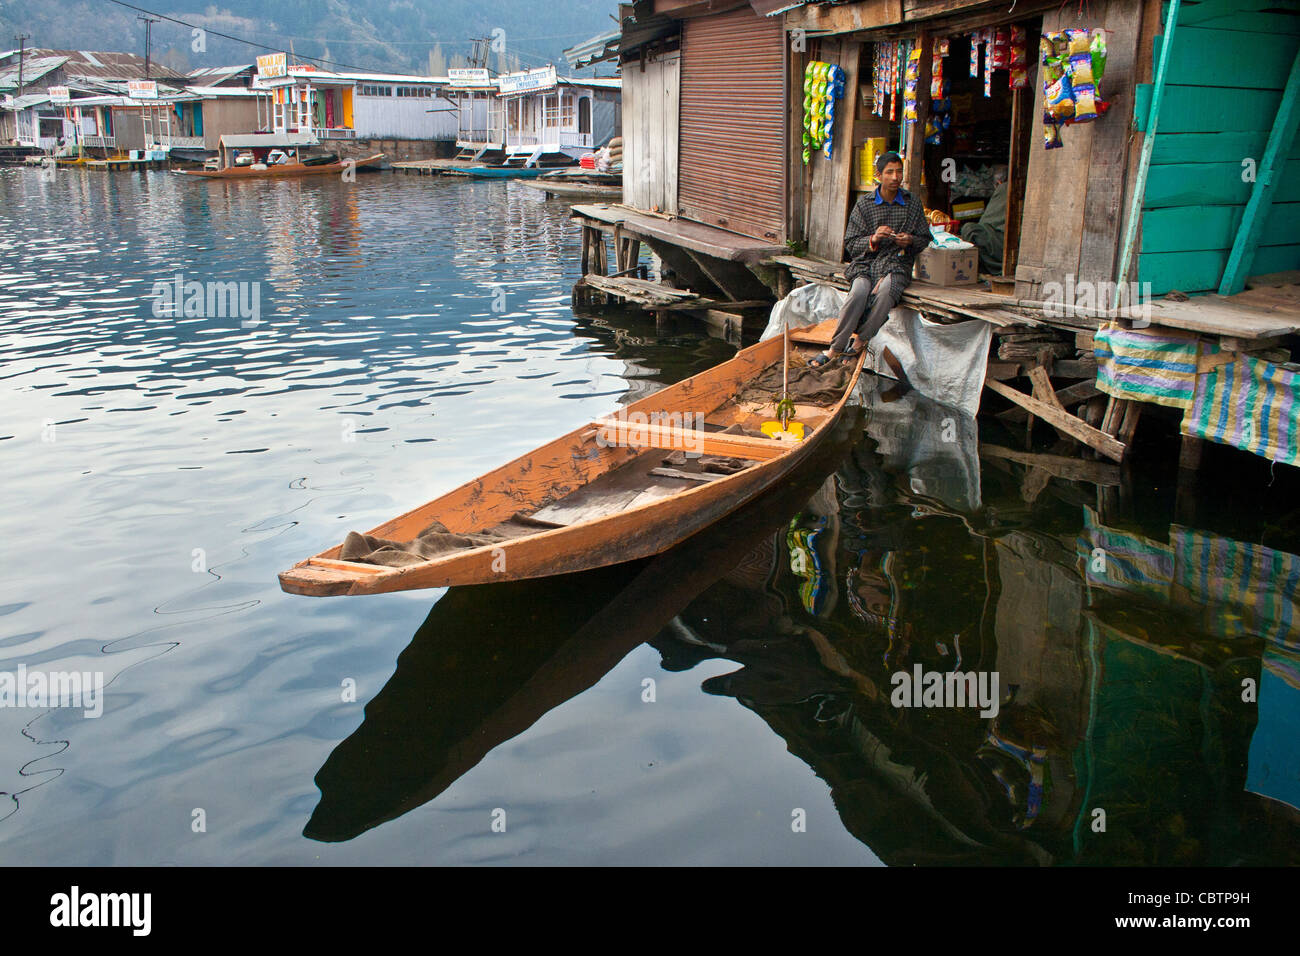 A Kashmiri man sits at his shop in the floating market of Dal Lake - Stock Image